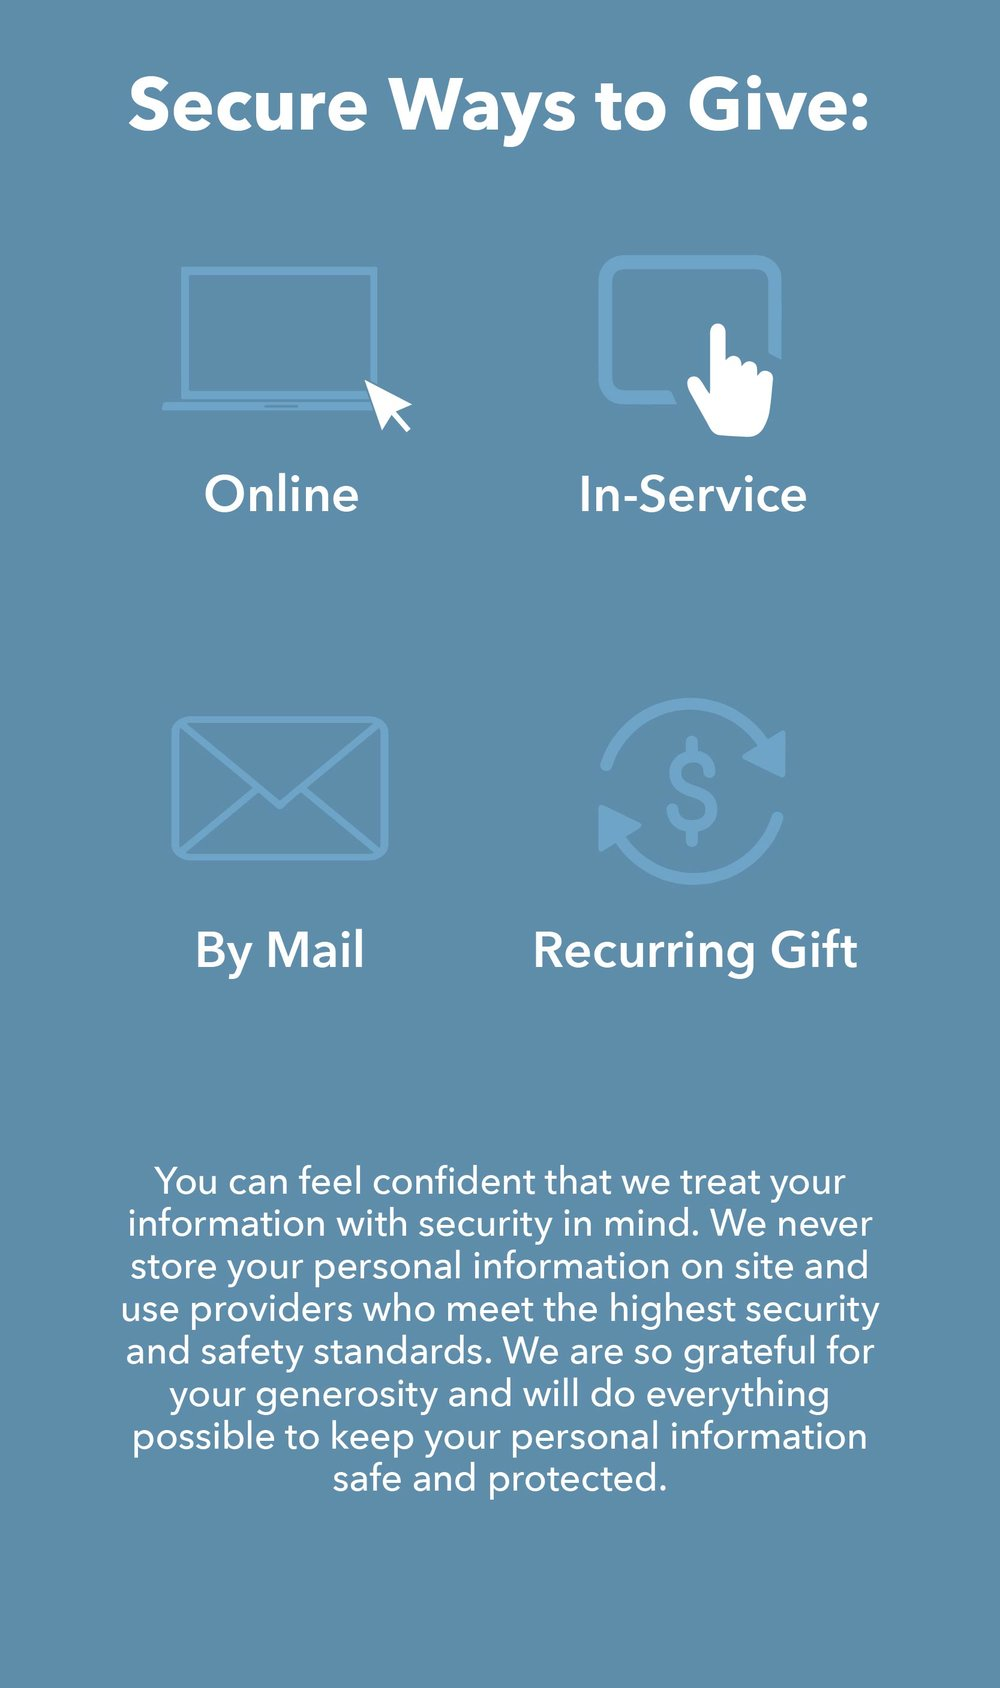 secure-ways-give-01.jpg